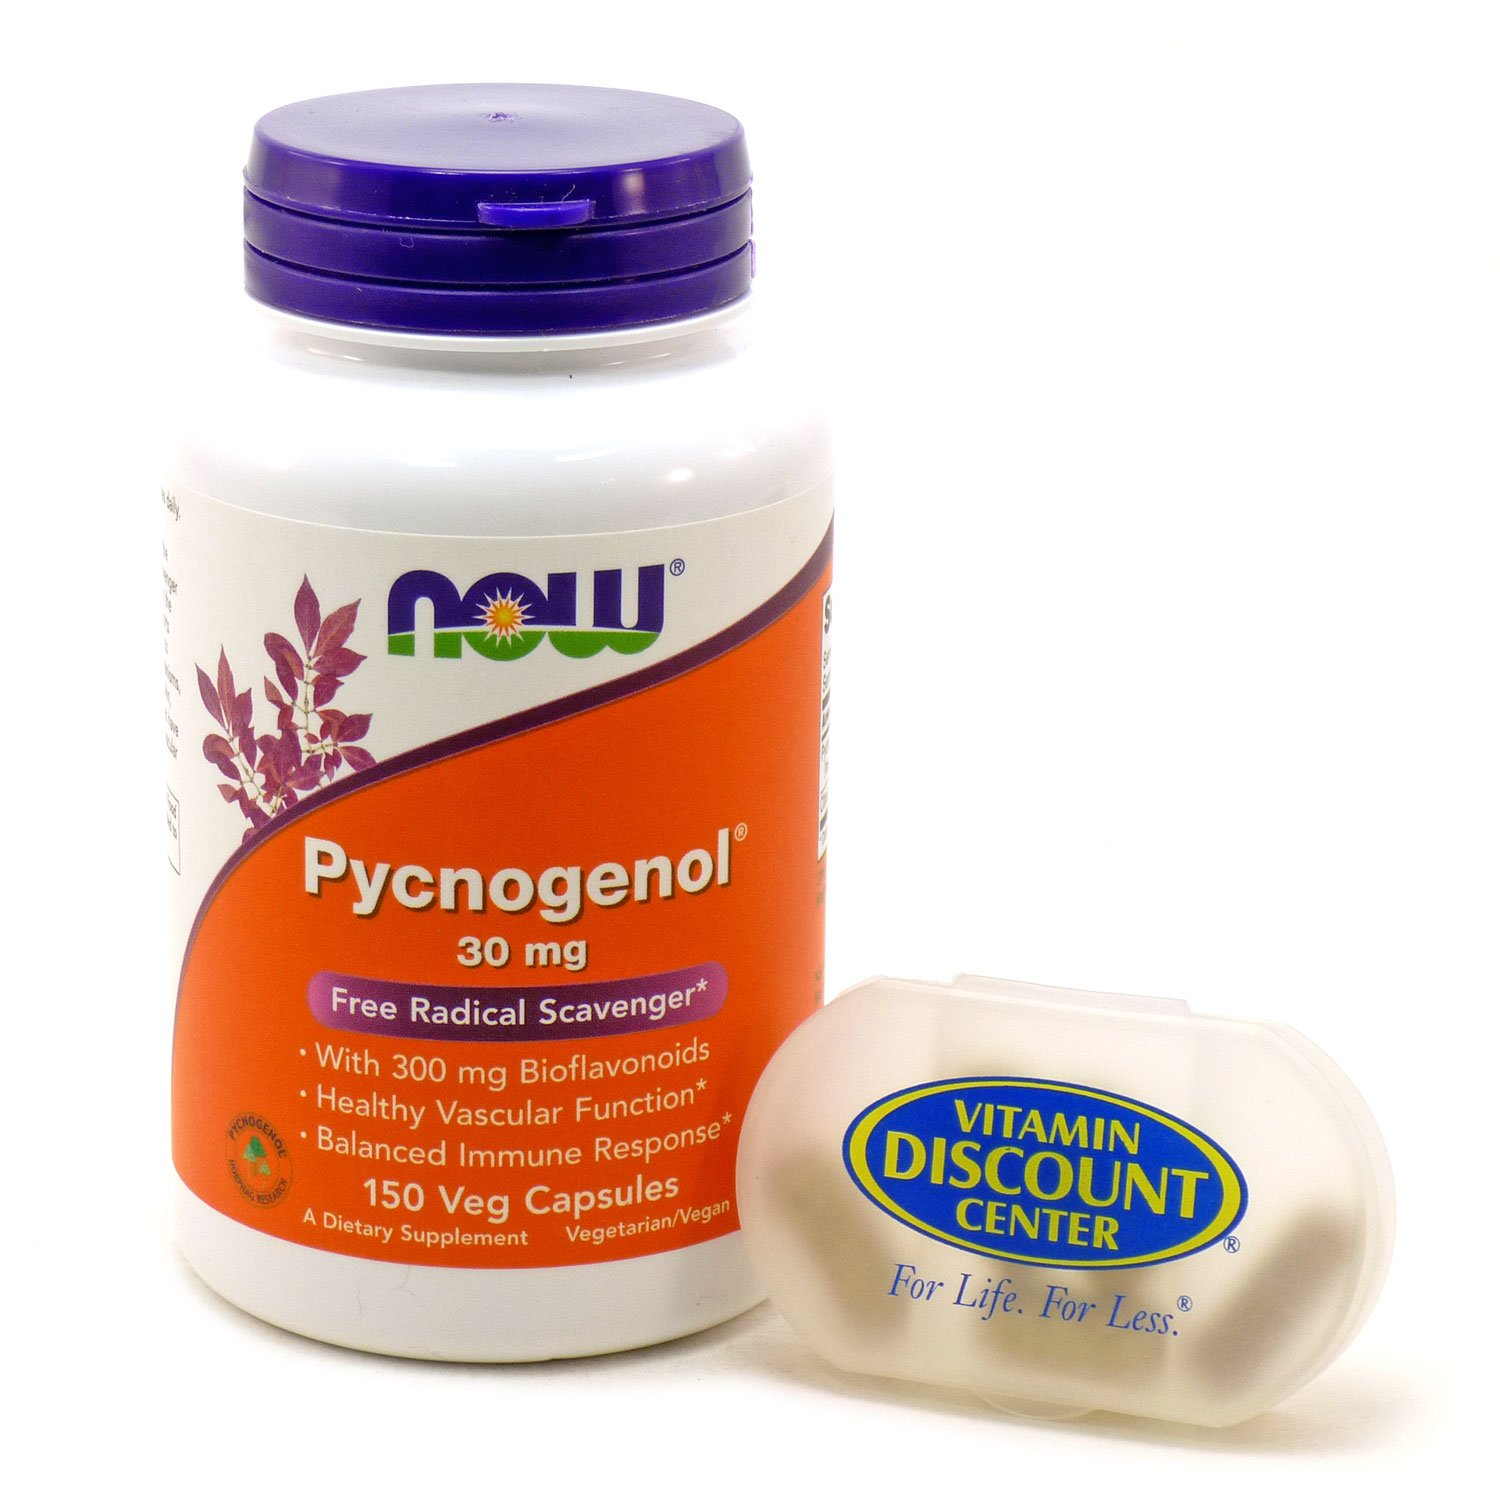 Bundle - 2 Items : 1 Bottle of Pycnogenol 30 mg by Now Foods - 150 Capsules and 1 VDC Pill Box by NOW Foods